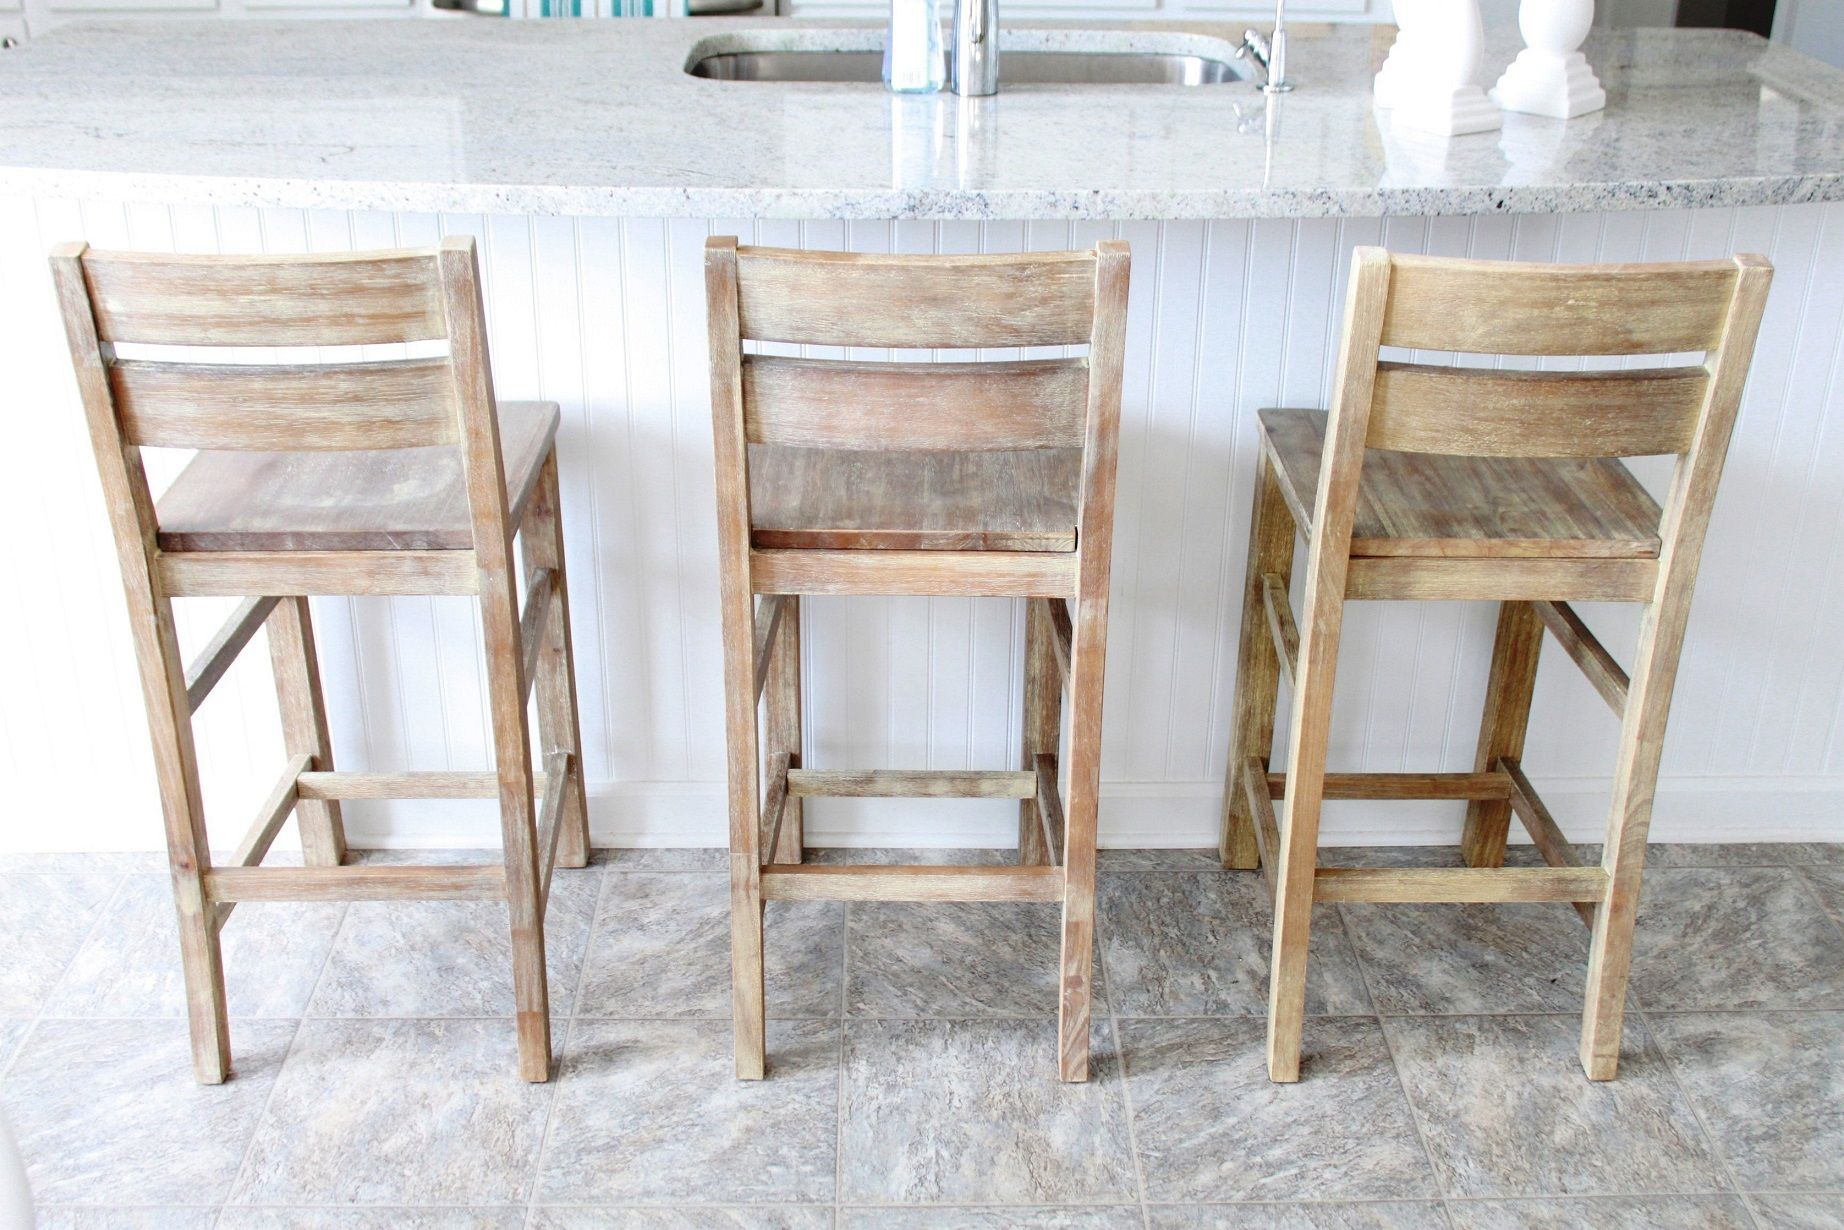 Counter Stools For Kitchen Black Hardware Diy Bar With Backs Ideas In 2018